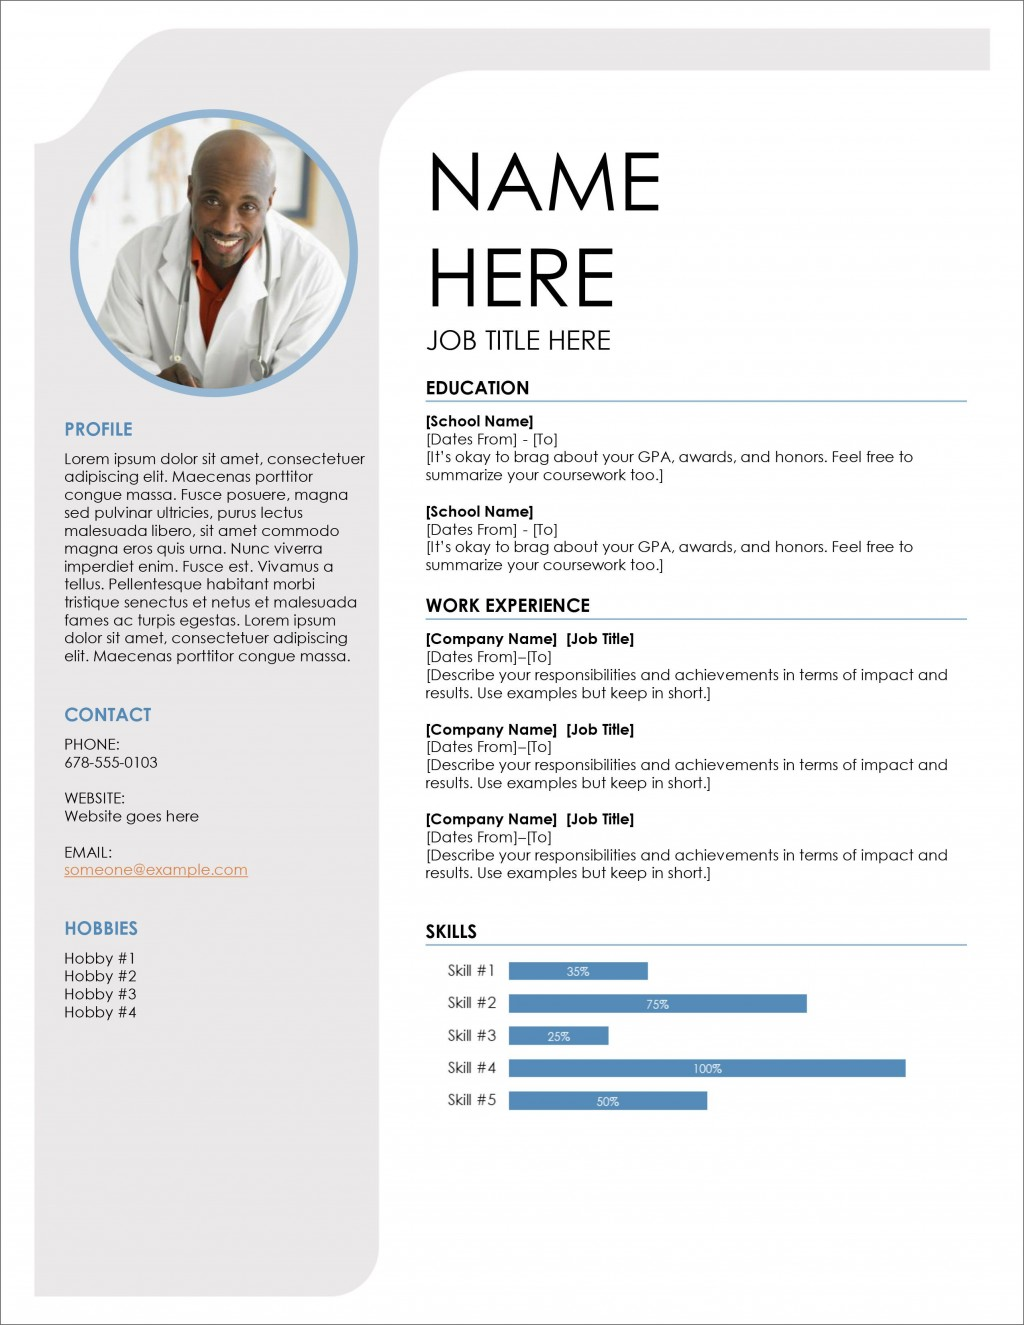 009 Amazing Resume Template Free Word Download Example  Cv With Photo Malaysia AustraliaLarge